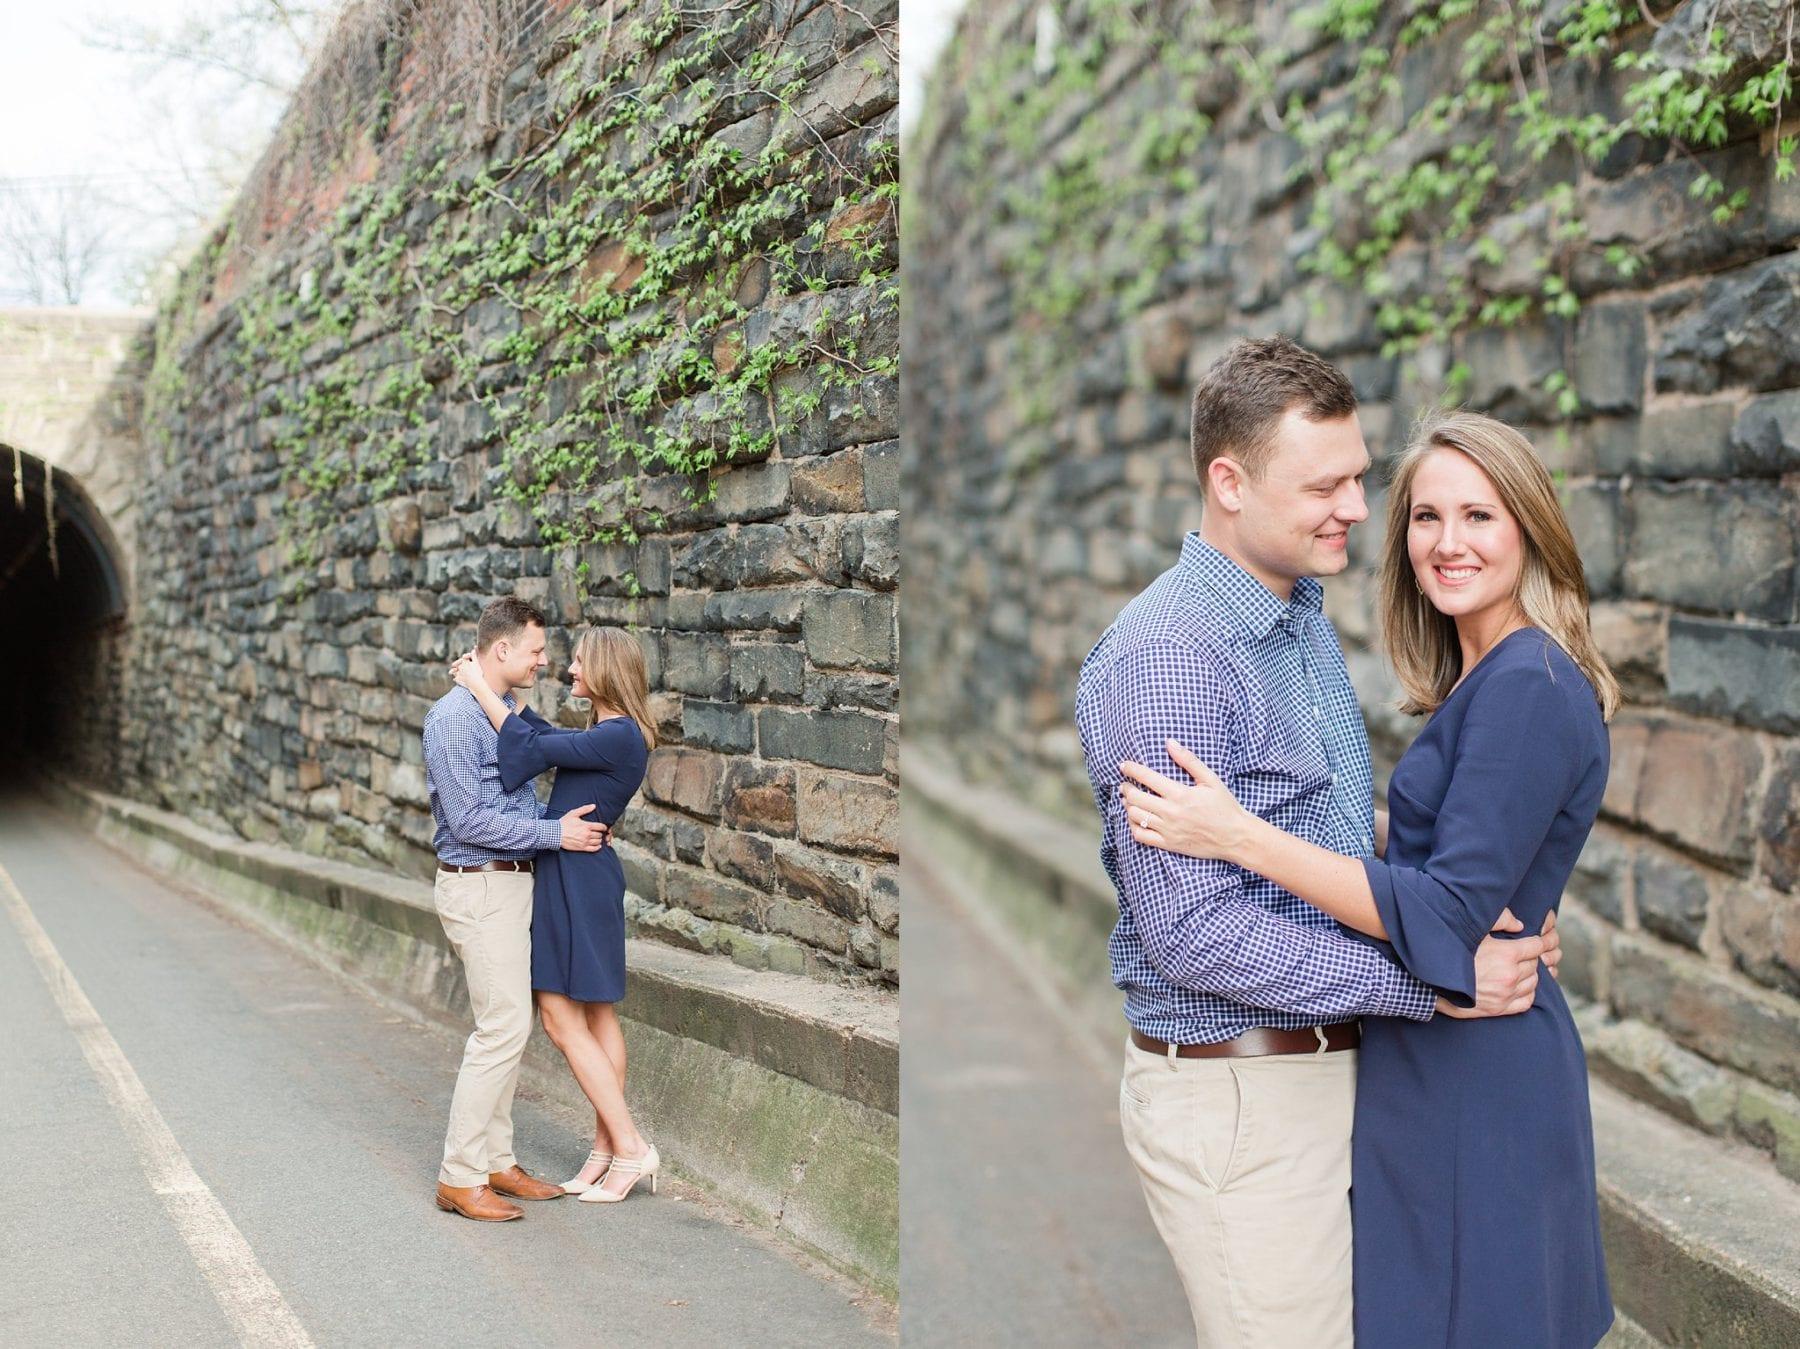 Springtime Old Town Alexandria Engagement Session Matt & Maxie Megan Kelsey Photography-125.jpg